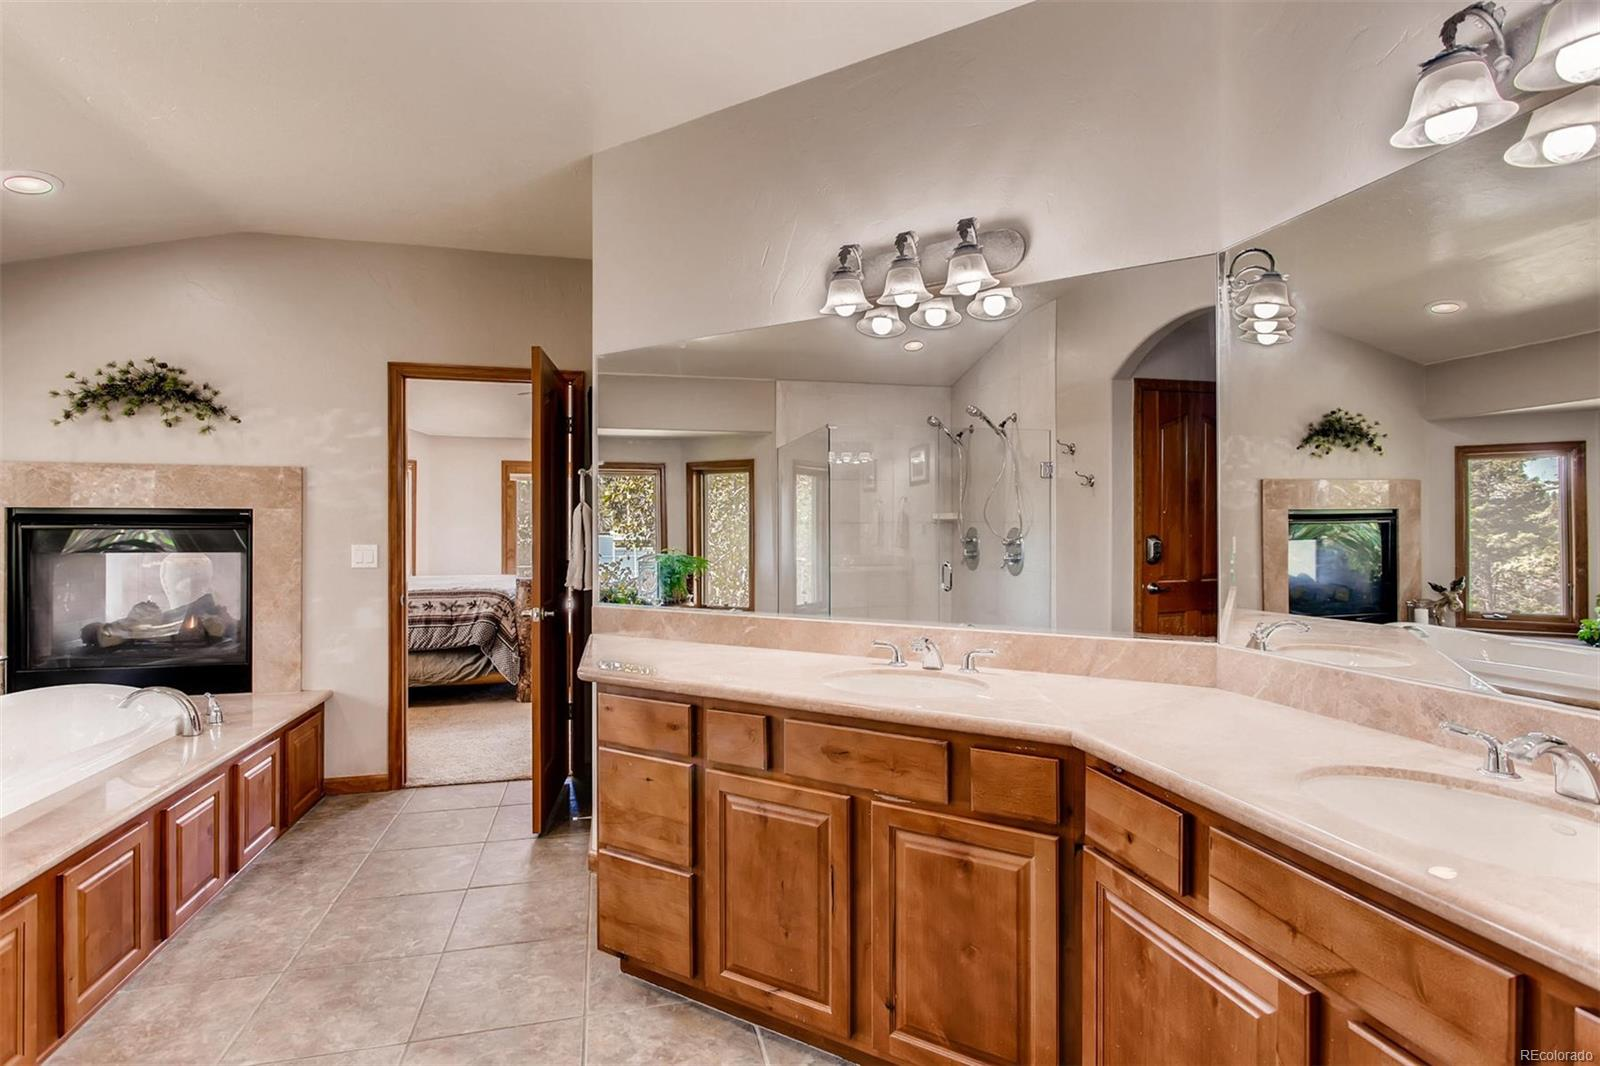 There is lots of counter space in the master bath so both parties can spread out